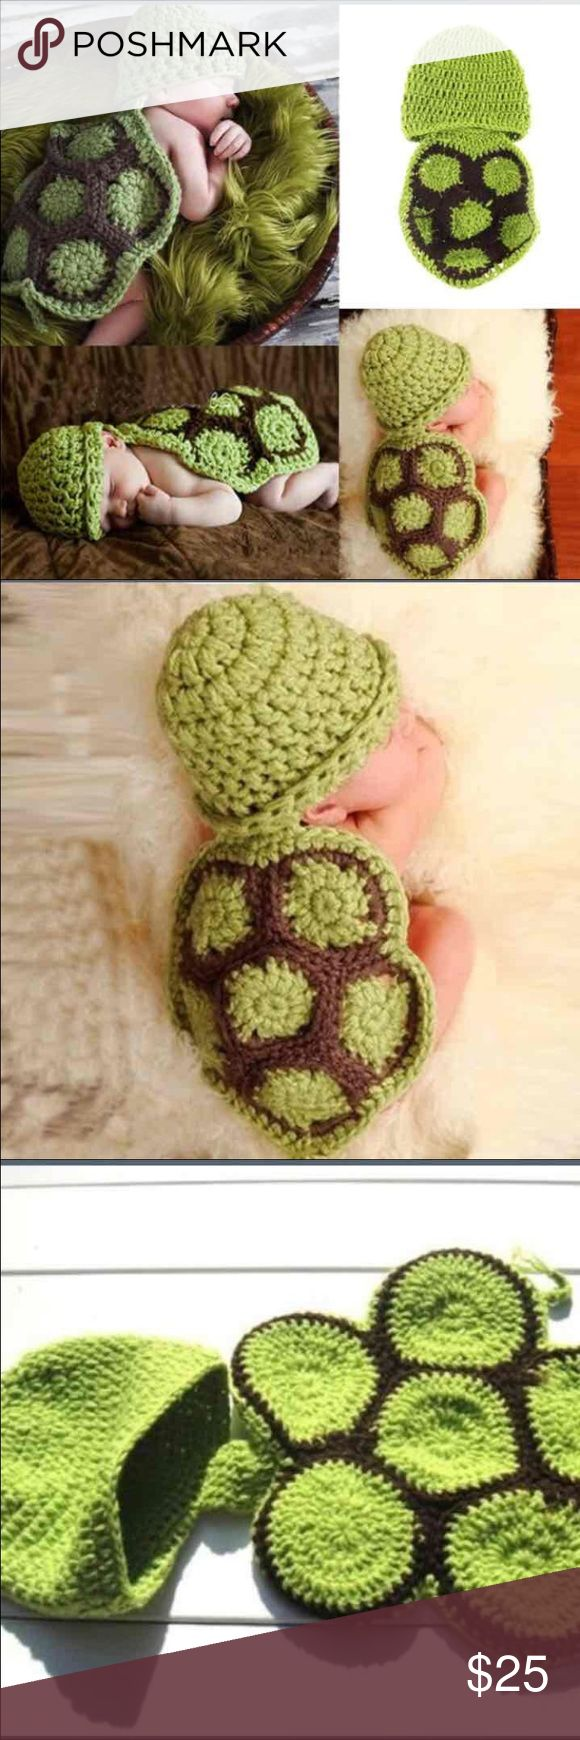 Adorable turtle baby outfit prop Adorable crotchet turtle photo prop for newborn pictures Costumes